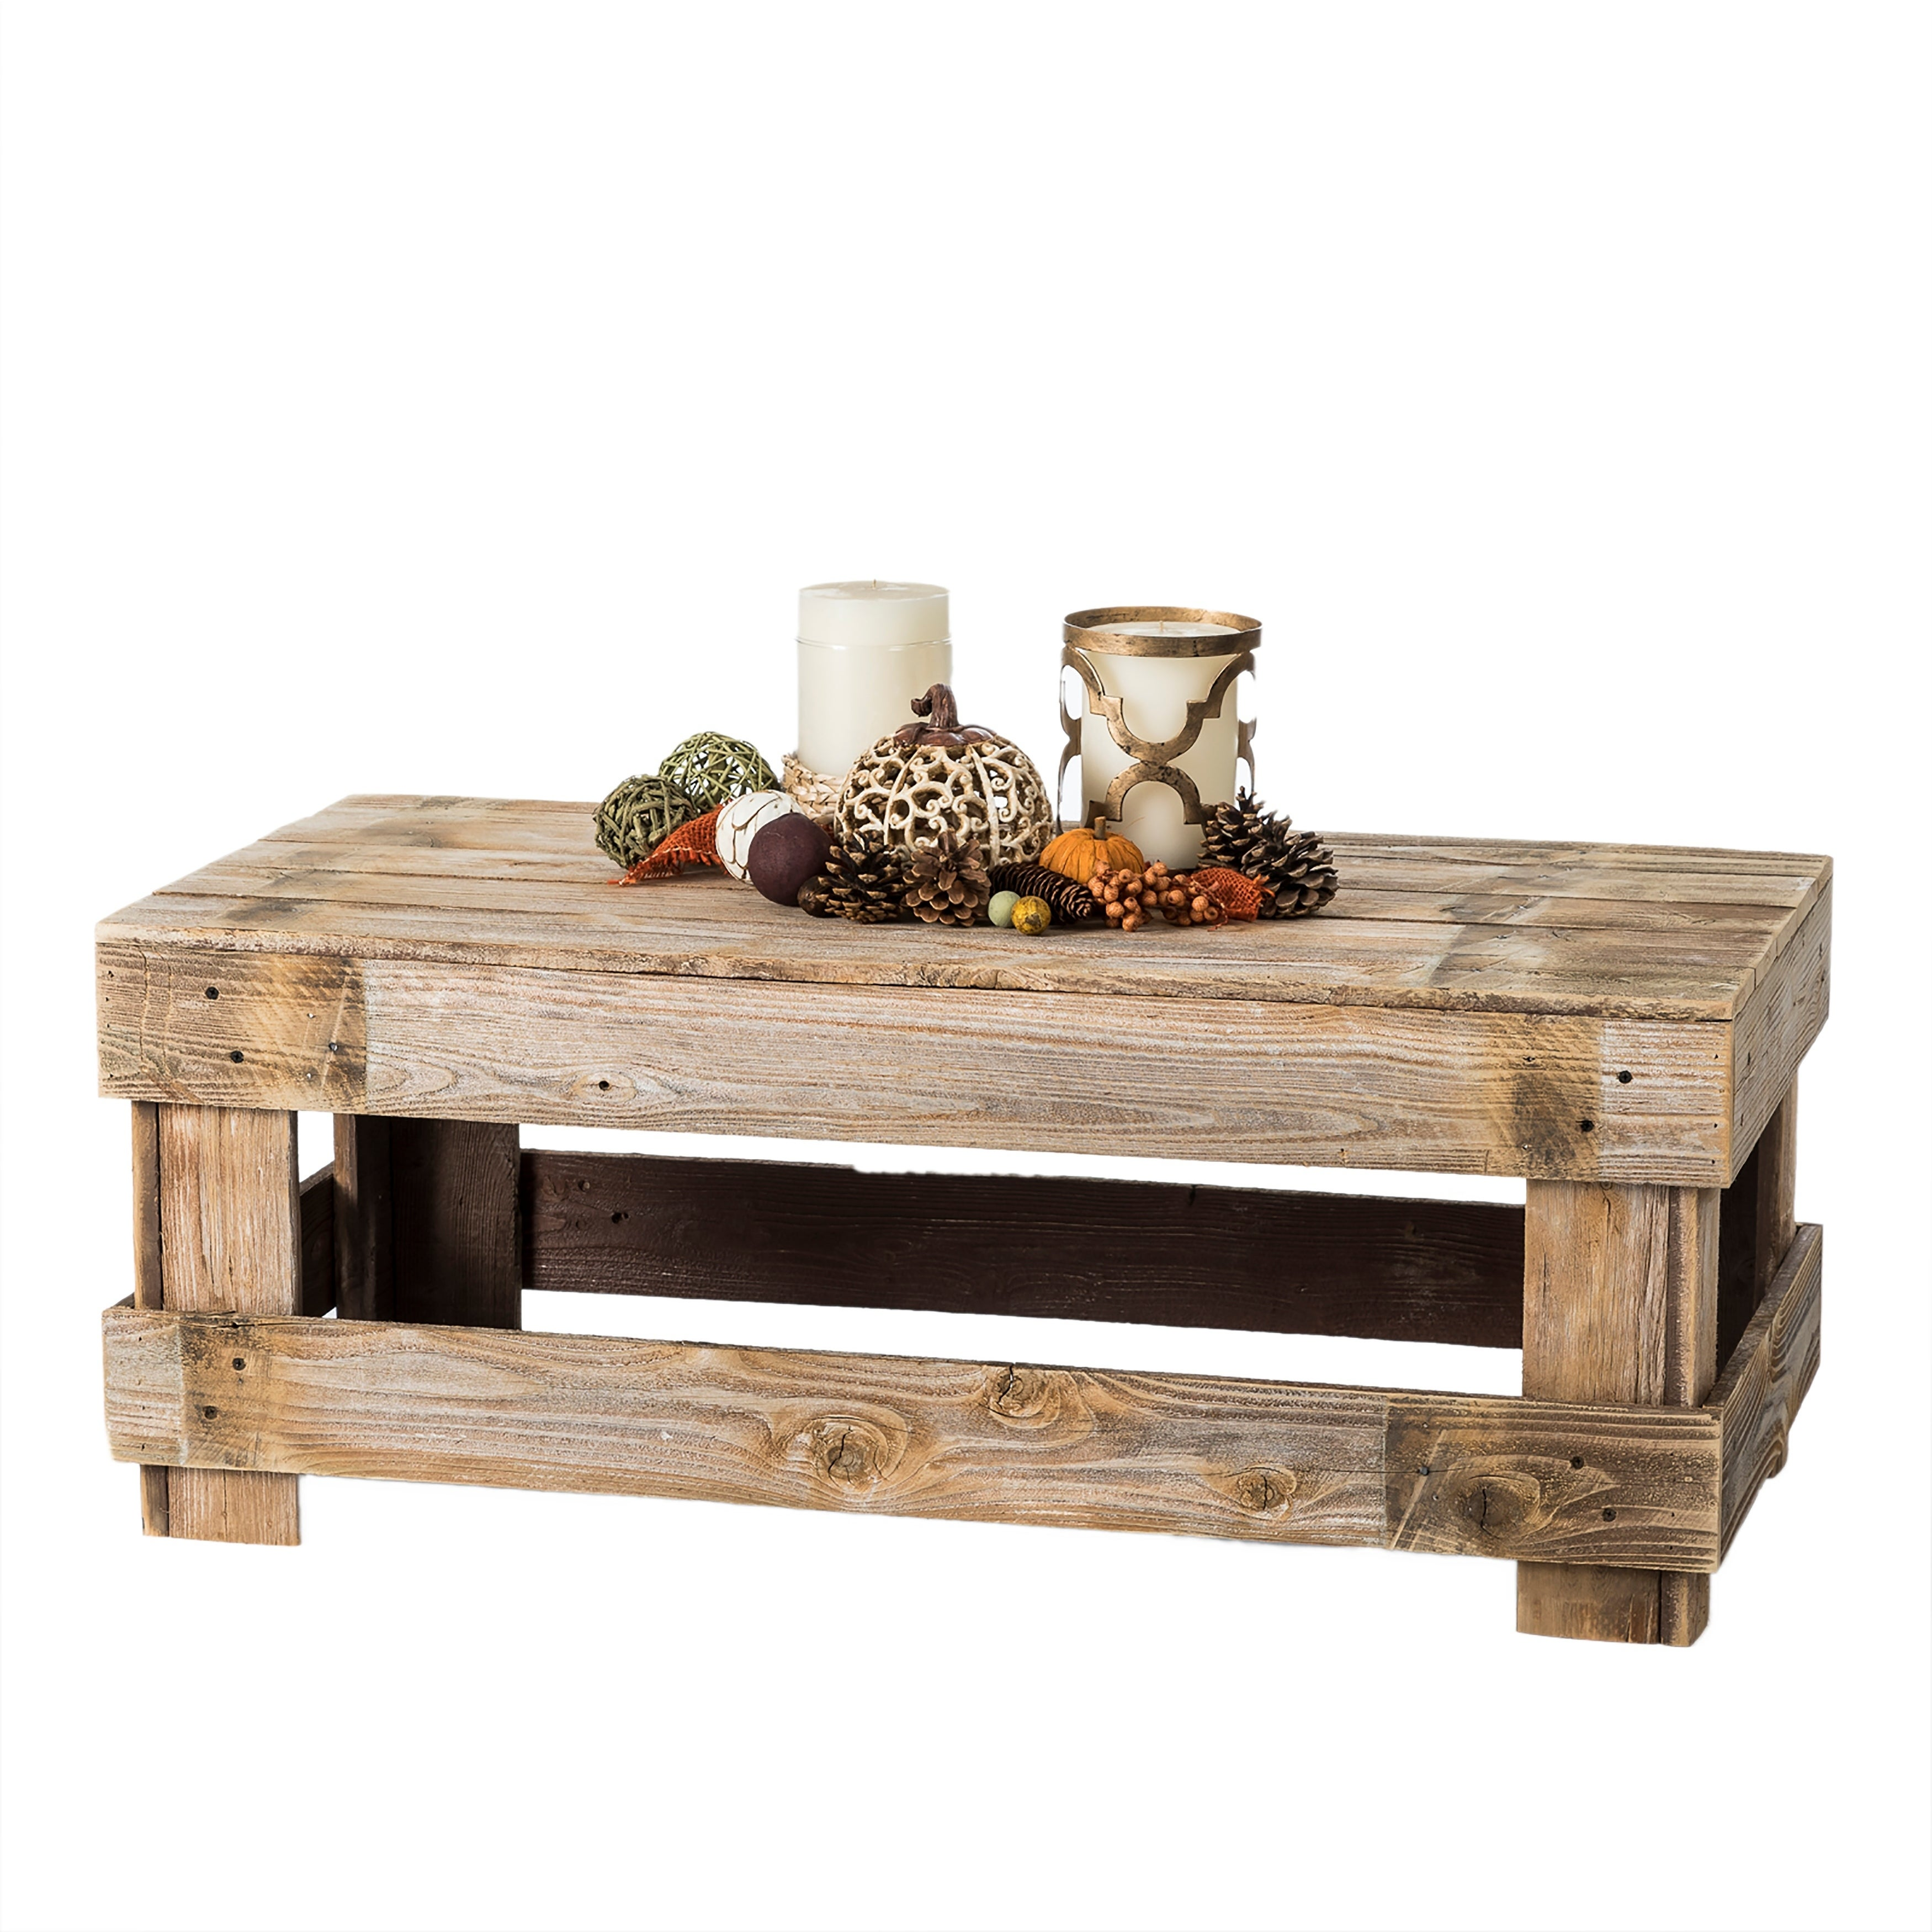 Miraculous Del Hutson Designs Barnwood Coffee Table Interior Design Ideas Gentotryabchikinfo